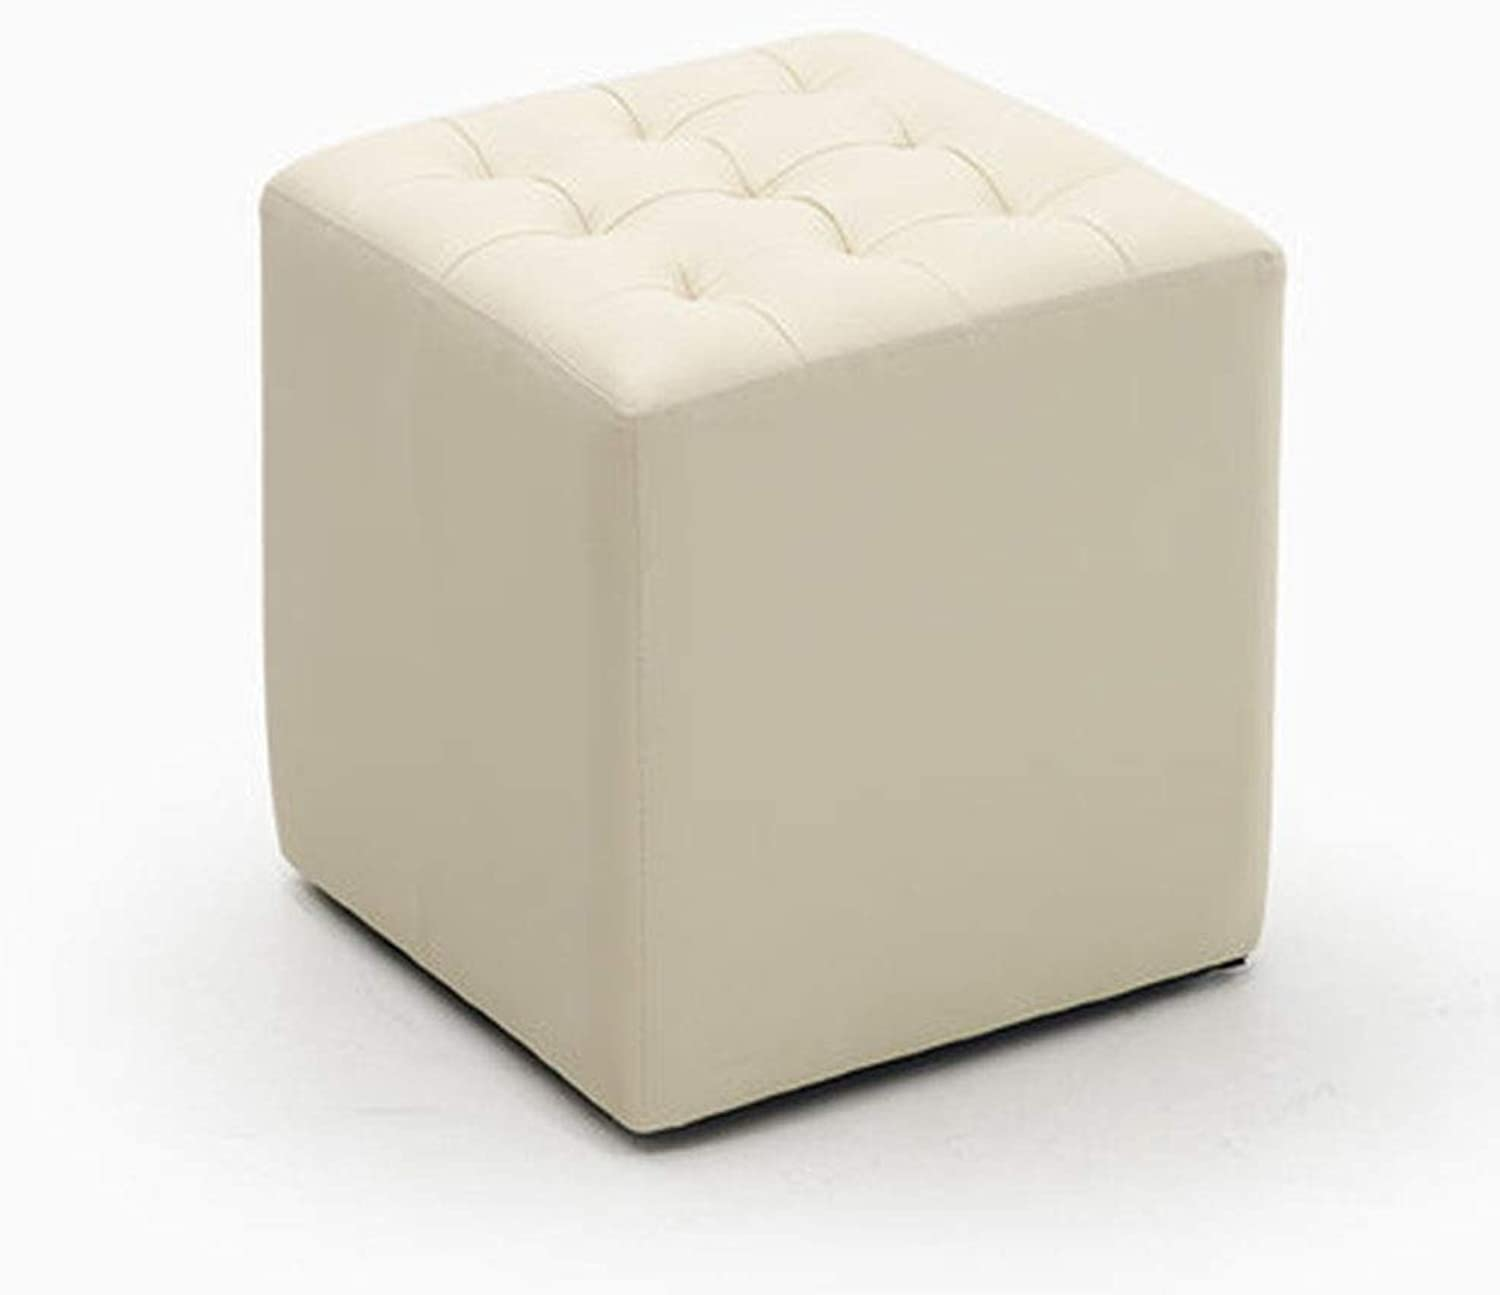 LJFYXZ Leather shoes Bench, Sofa Stool Living Room Square Stool Artificial Leather 34.5x34.5x36cm (color   Beige)